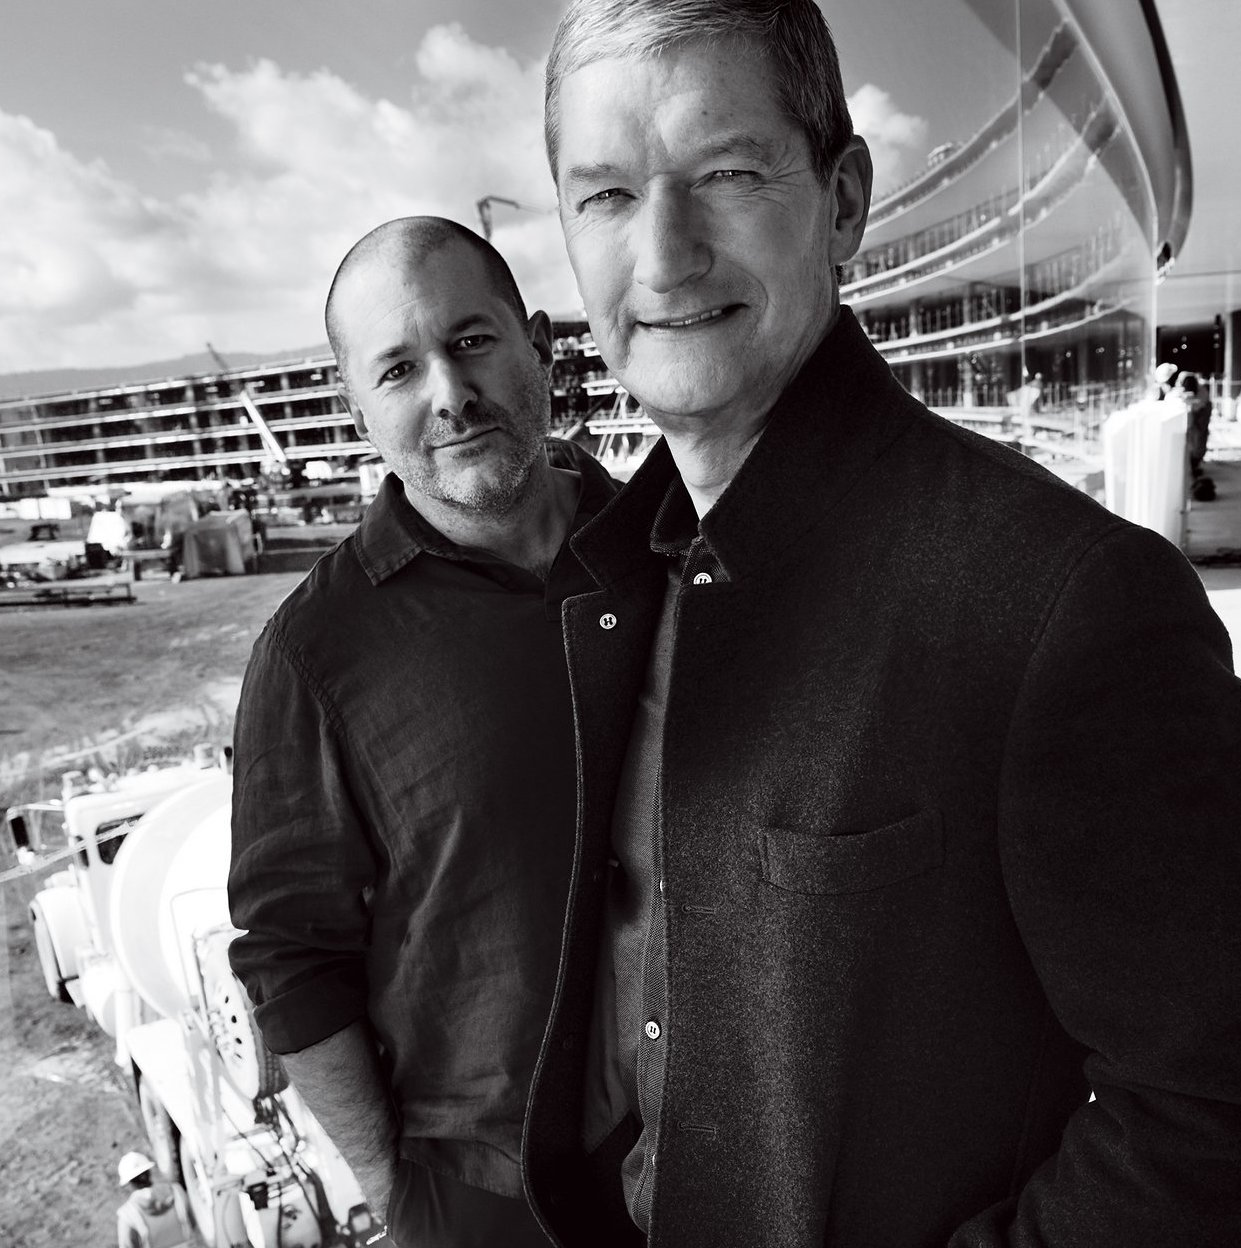 Jony Ive Tim Cook Vogue image 002